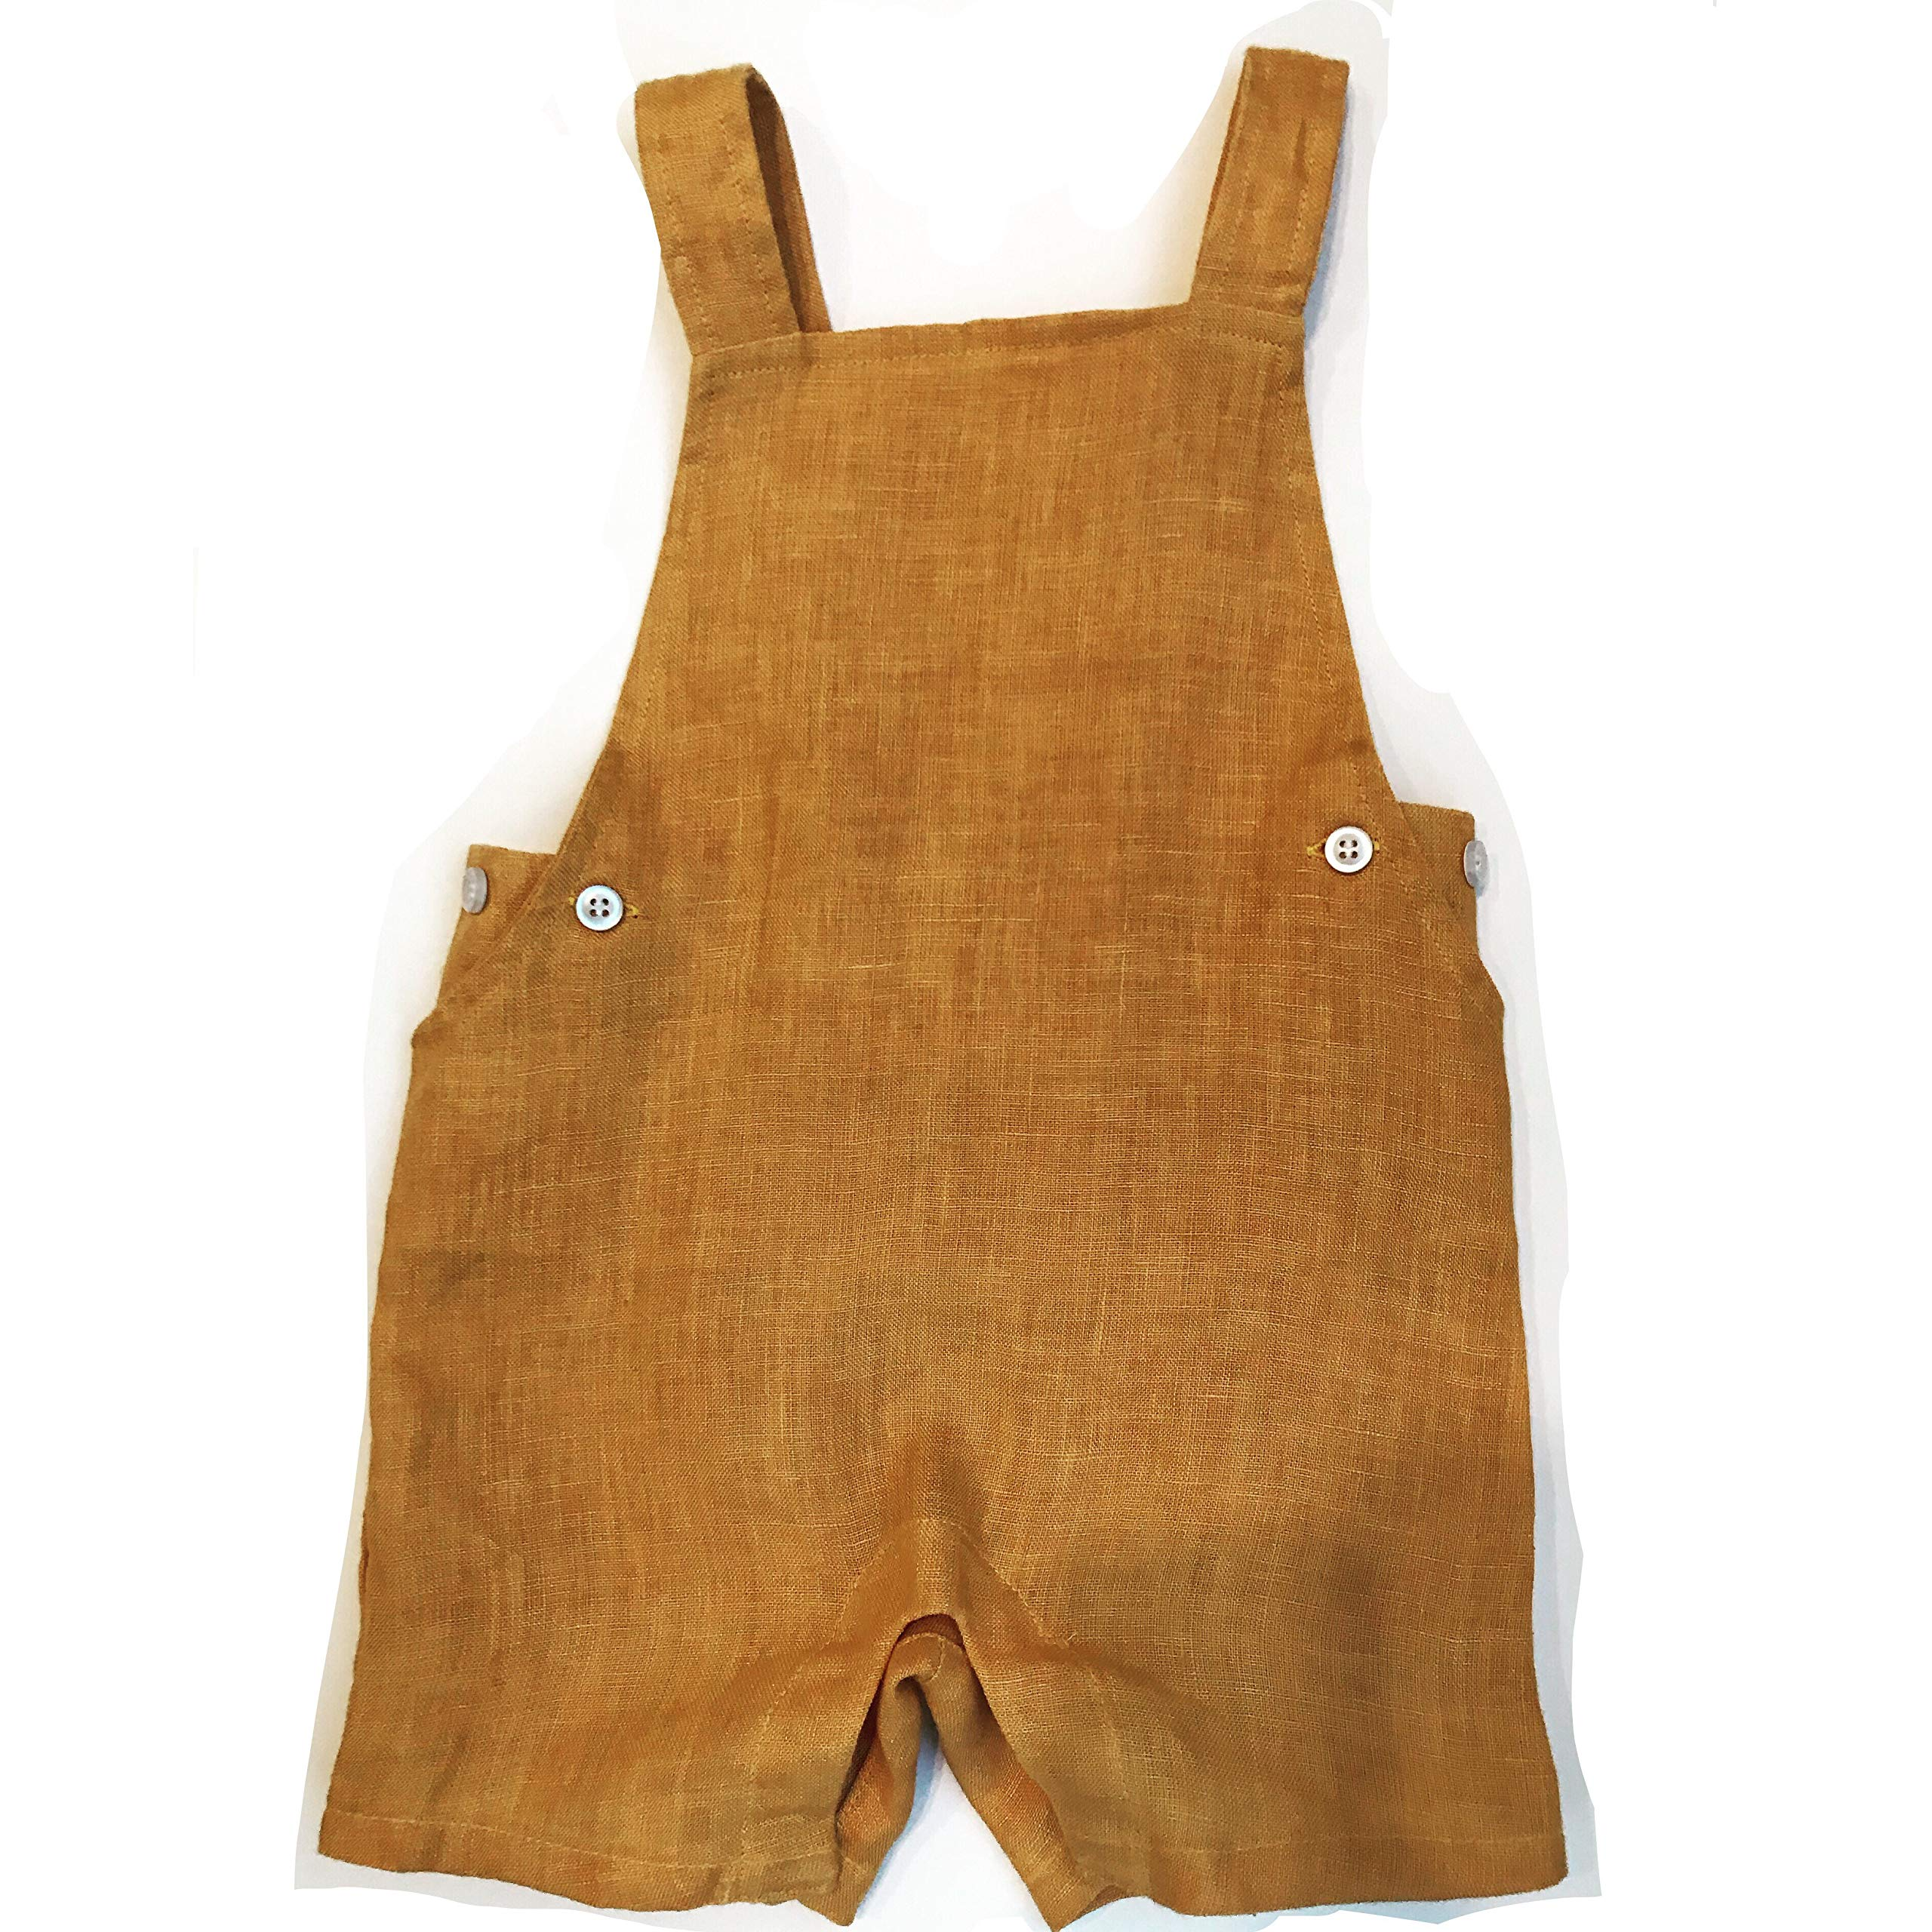 Loliuicca Toddler Kids Cotton Linen Jumpsuit Knotted Playsuit Solid Overalls with Pocket